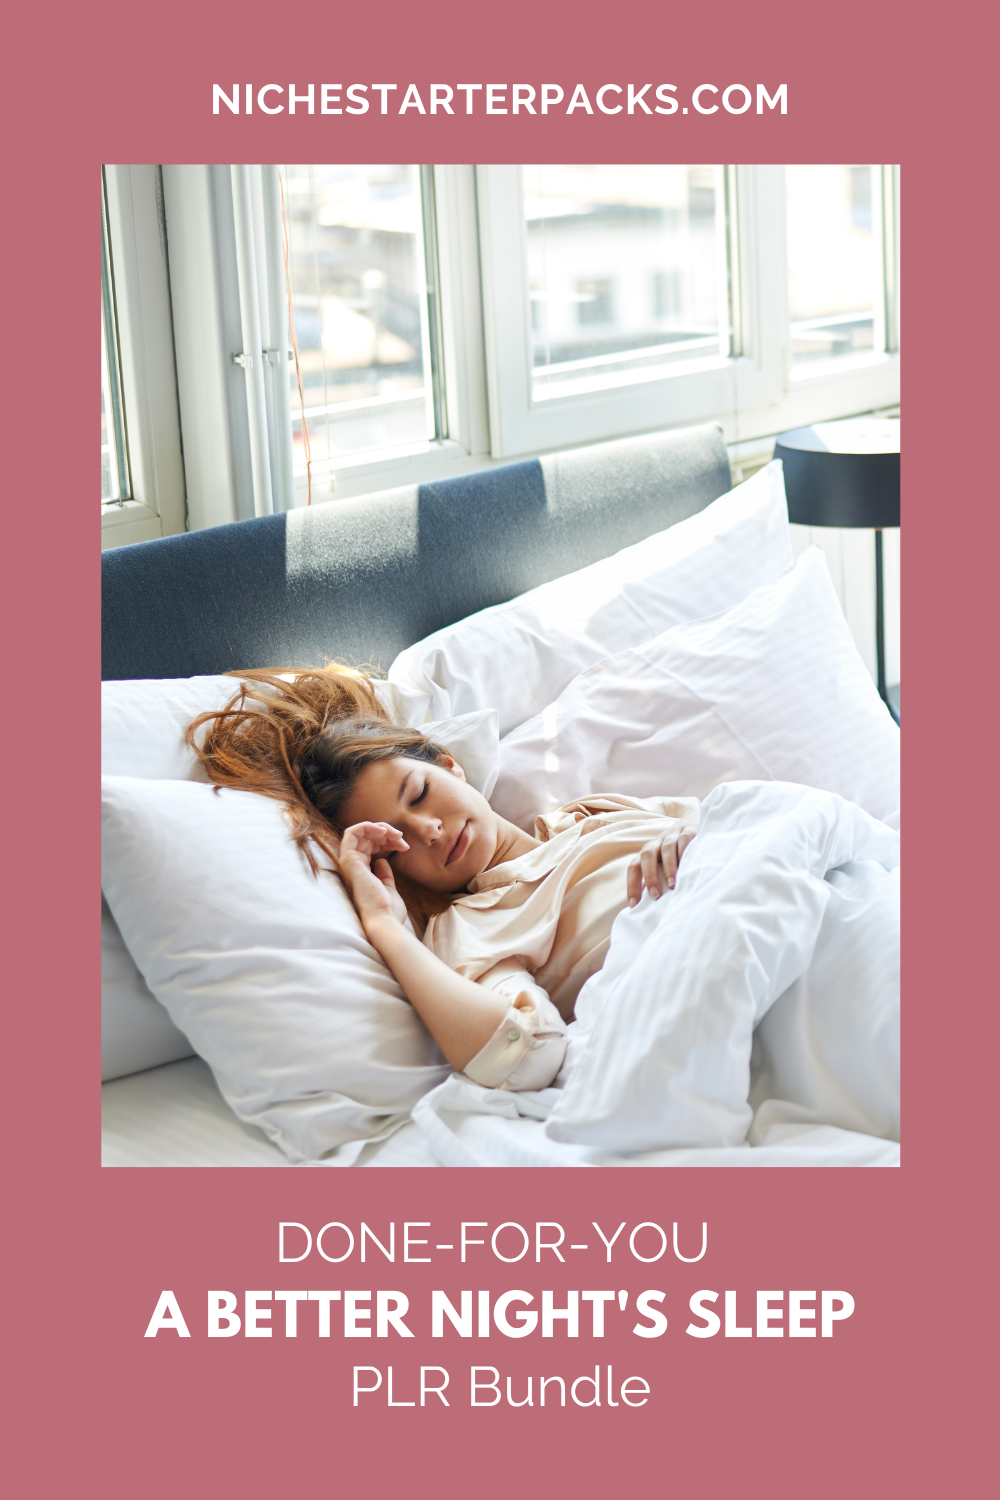 Done-for-you PLR A Better Night's Sleep - PIN